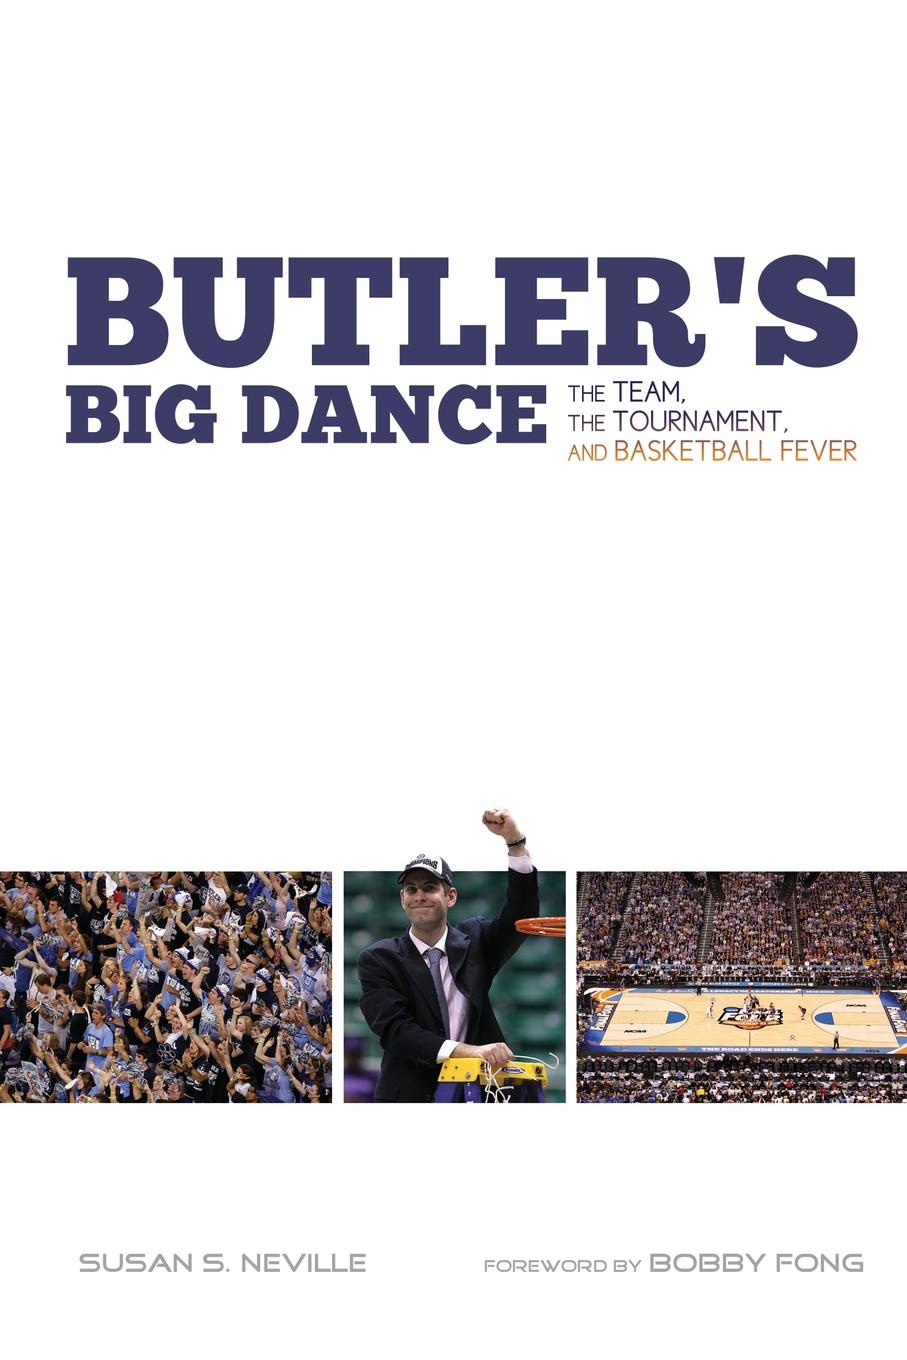 Susan S Neville Butlers Big Dance. The Team, the Tournament, and Basketball Fever